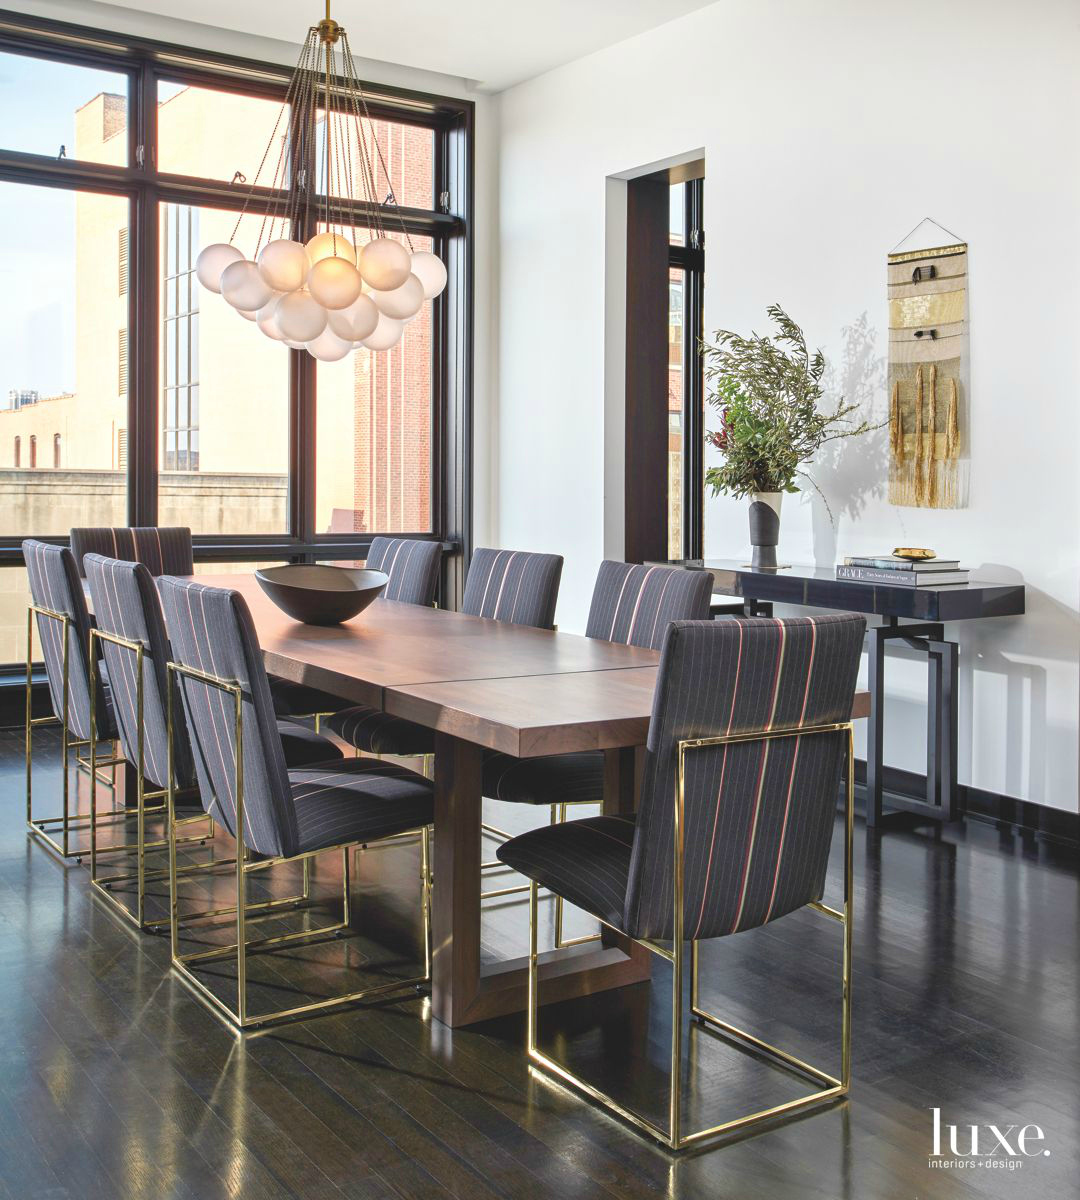 10 Dazzling Dining Room Design Ideas From LuxeSource To Copy Right Now dining room ideas 10 Dazzling Dining Room Ideas From LuxeSource To Copy Right Now 10 Dazzling Dining Room Ideas From LuxeSource To Copy Right Now 3